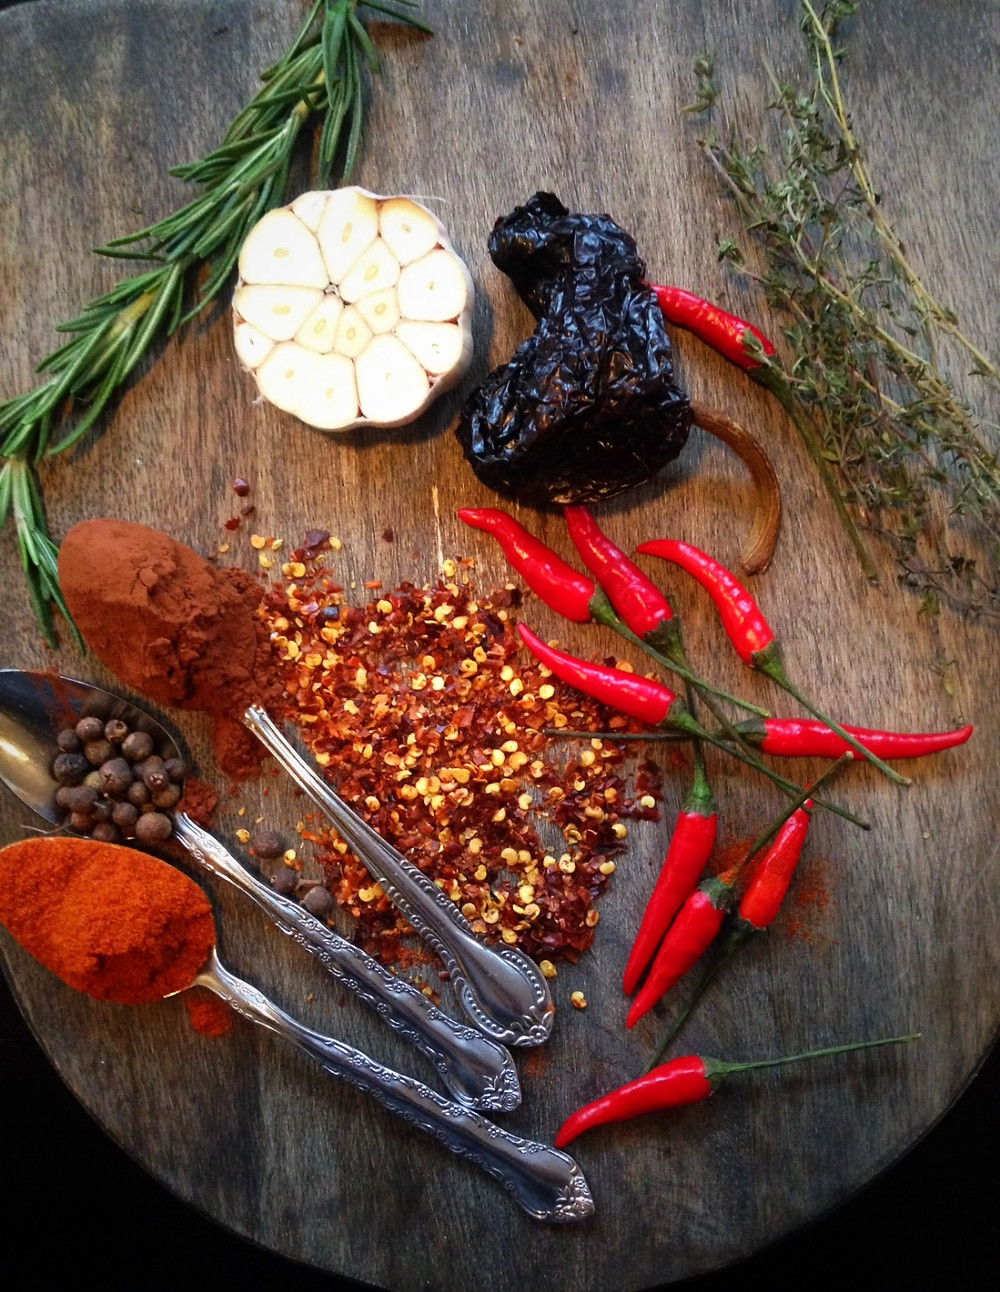 monkey weddings & summer sapphires musher chili by author photographer colleen thompson